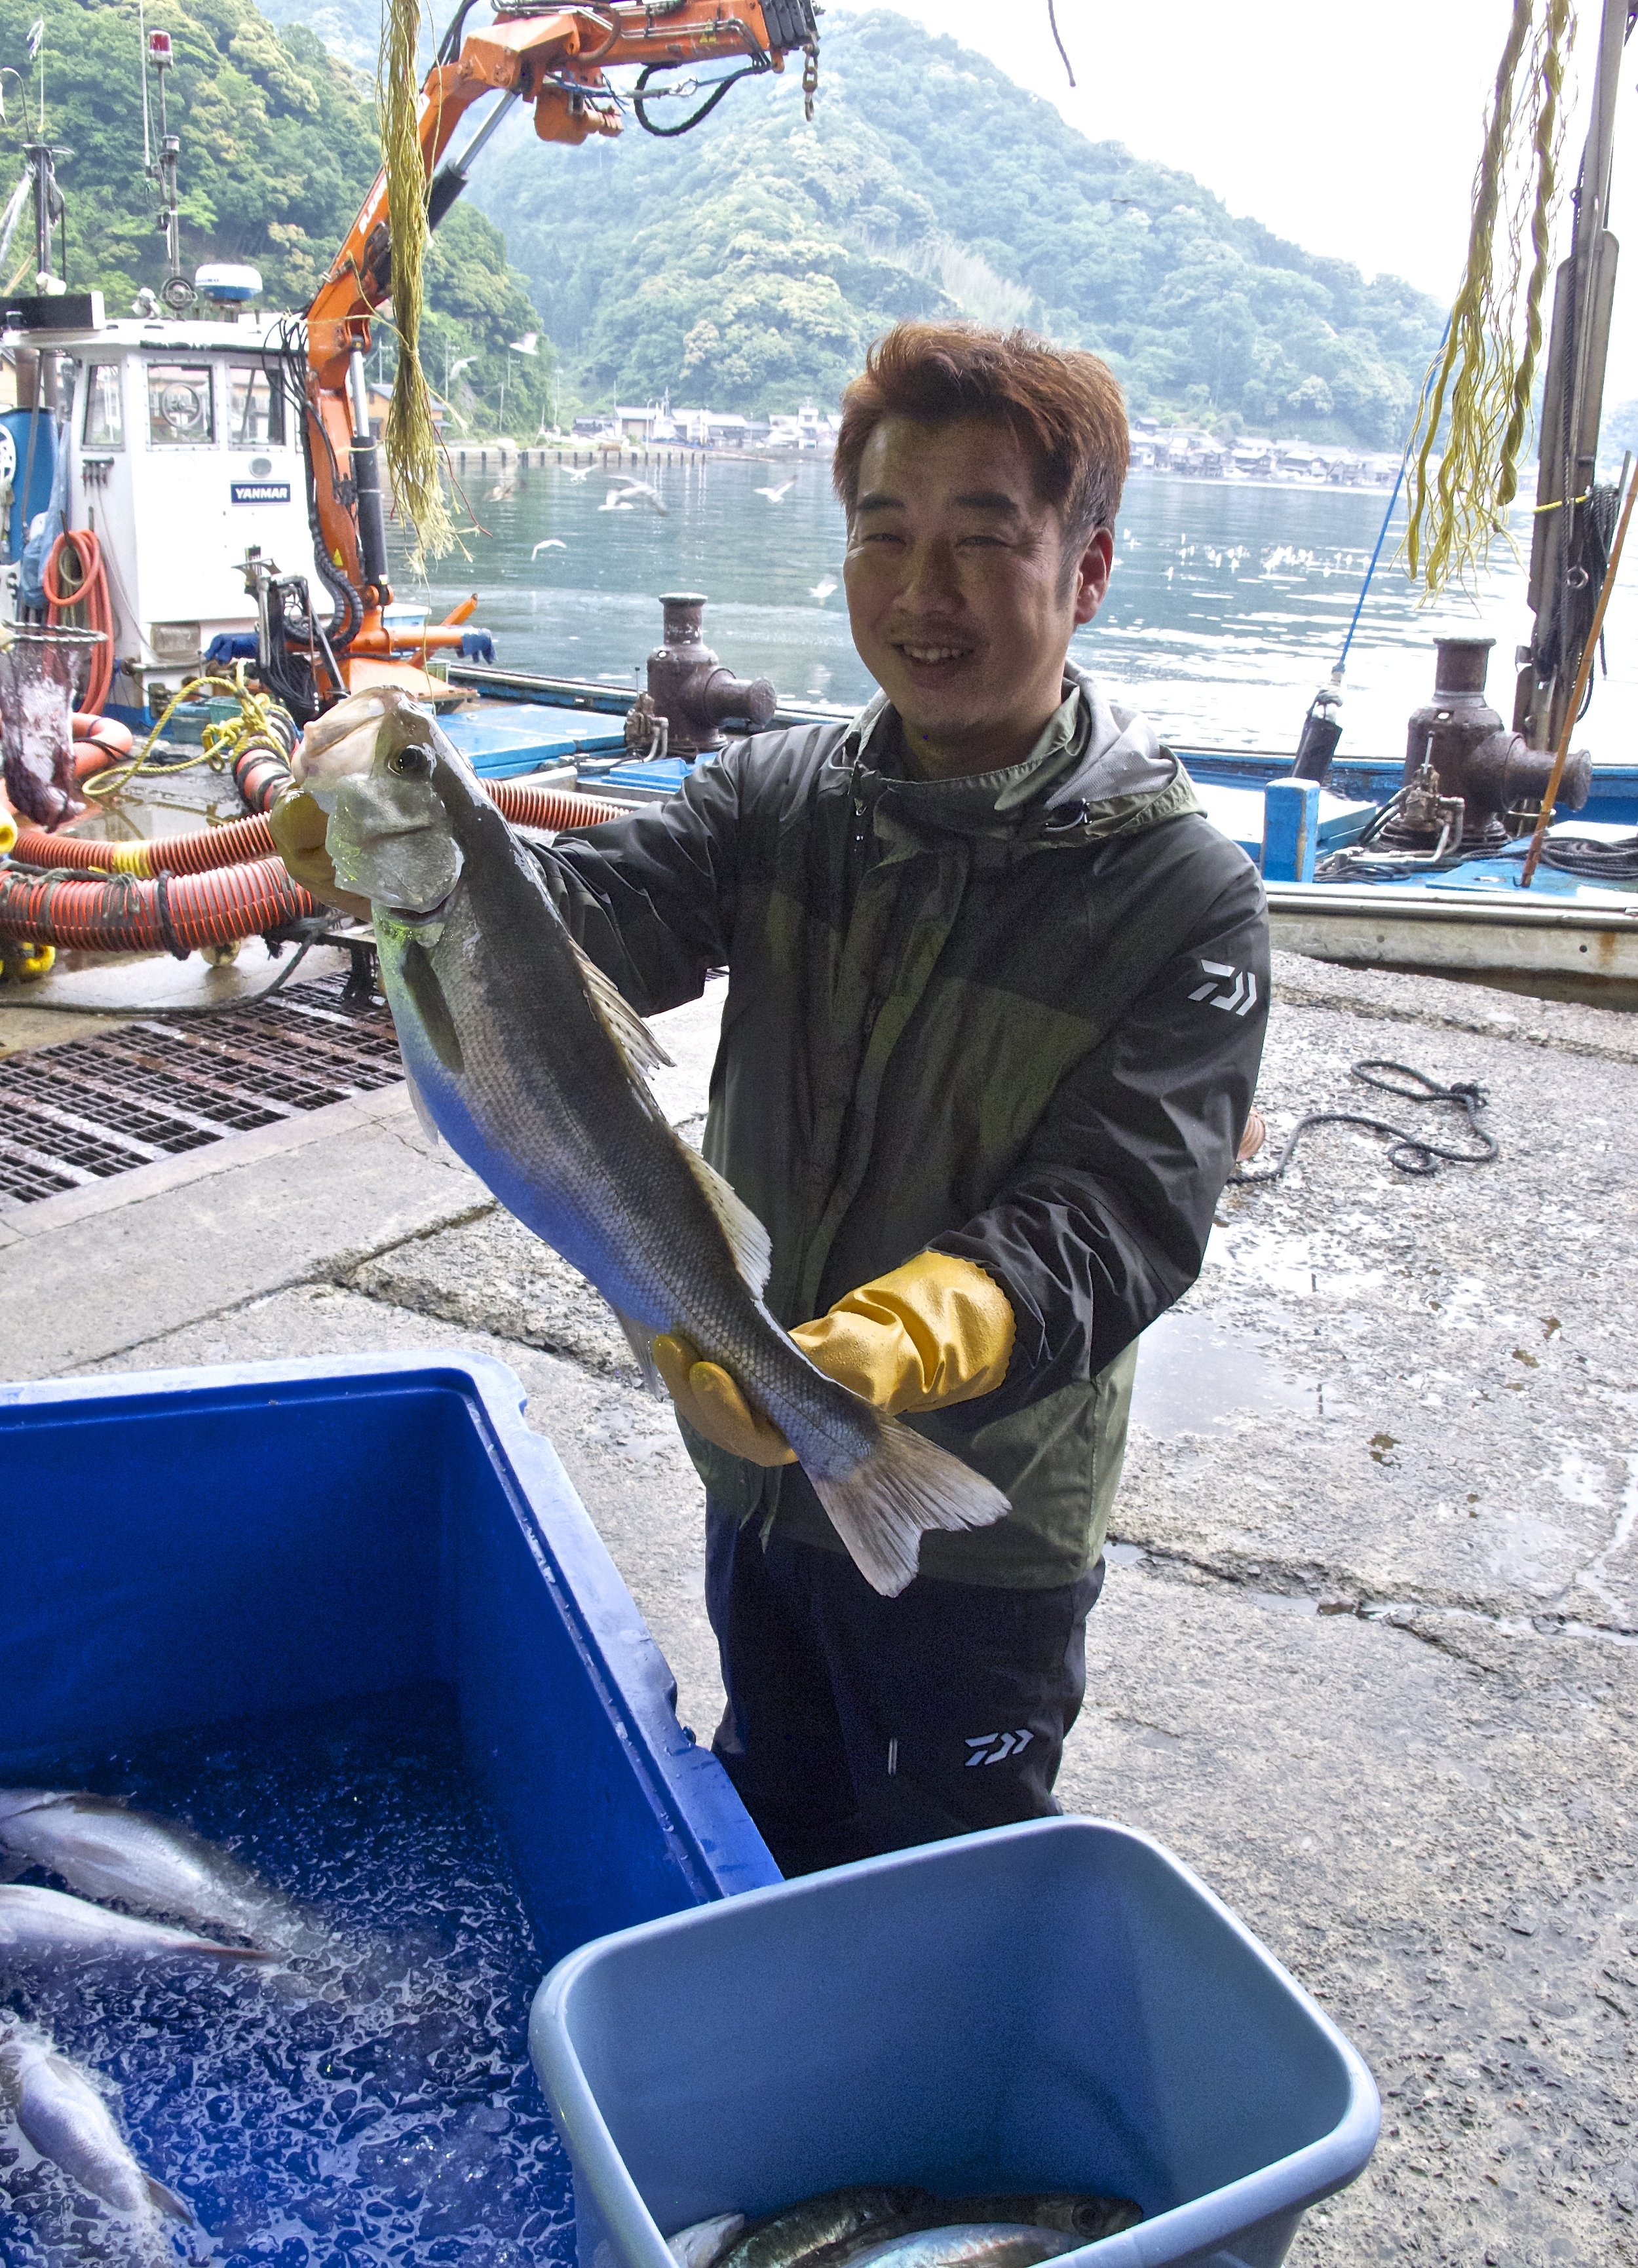 Kengo Kagi holds up a  sawara  (Spanish mackerel) at Ine's cooperative fish market, the  hamauri,  that takes place every morning on the beach at the center of the village.  Sawara  is considered the best kind of mackerel in Japan because of its size and succulent white flesh.